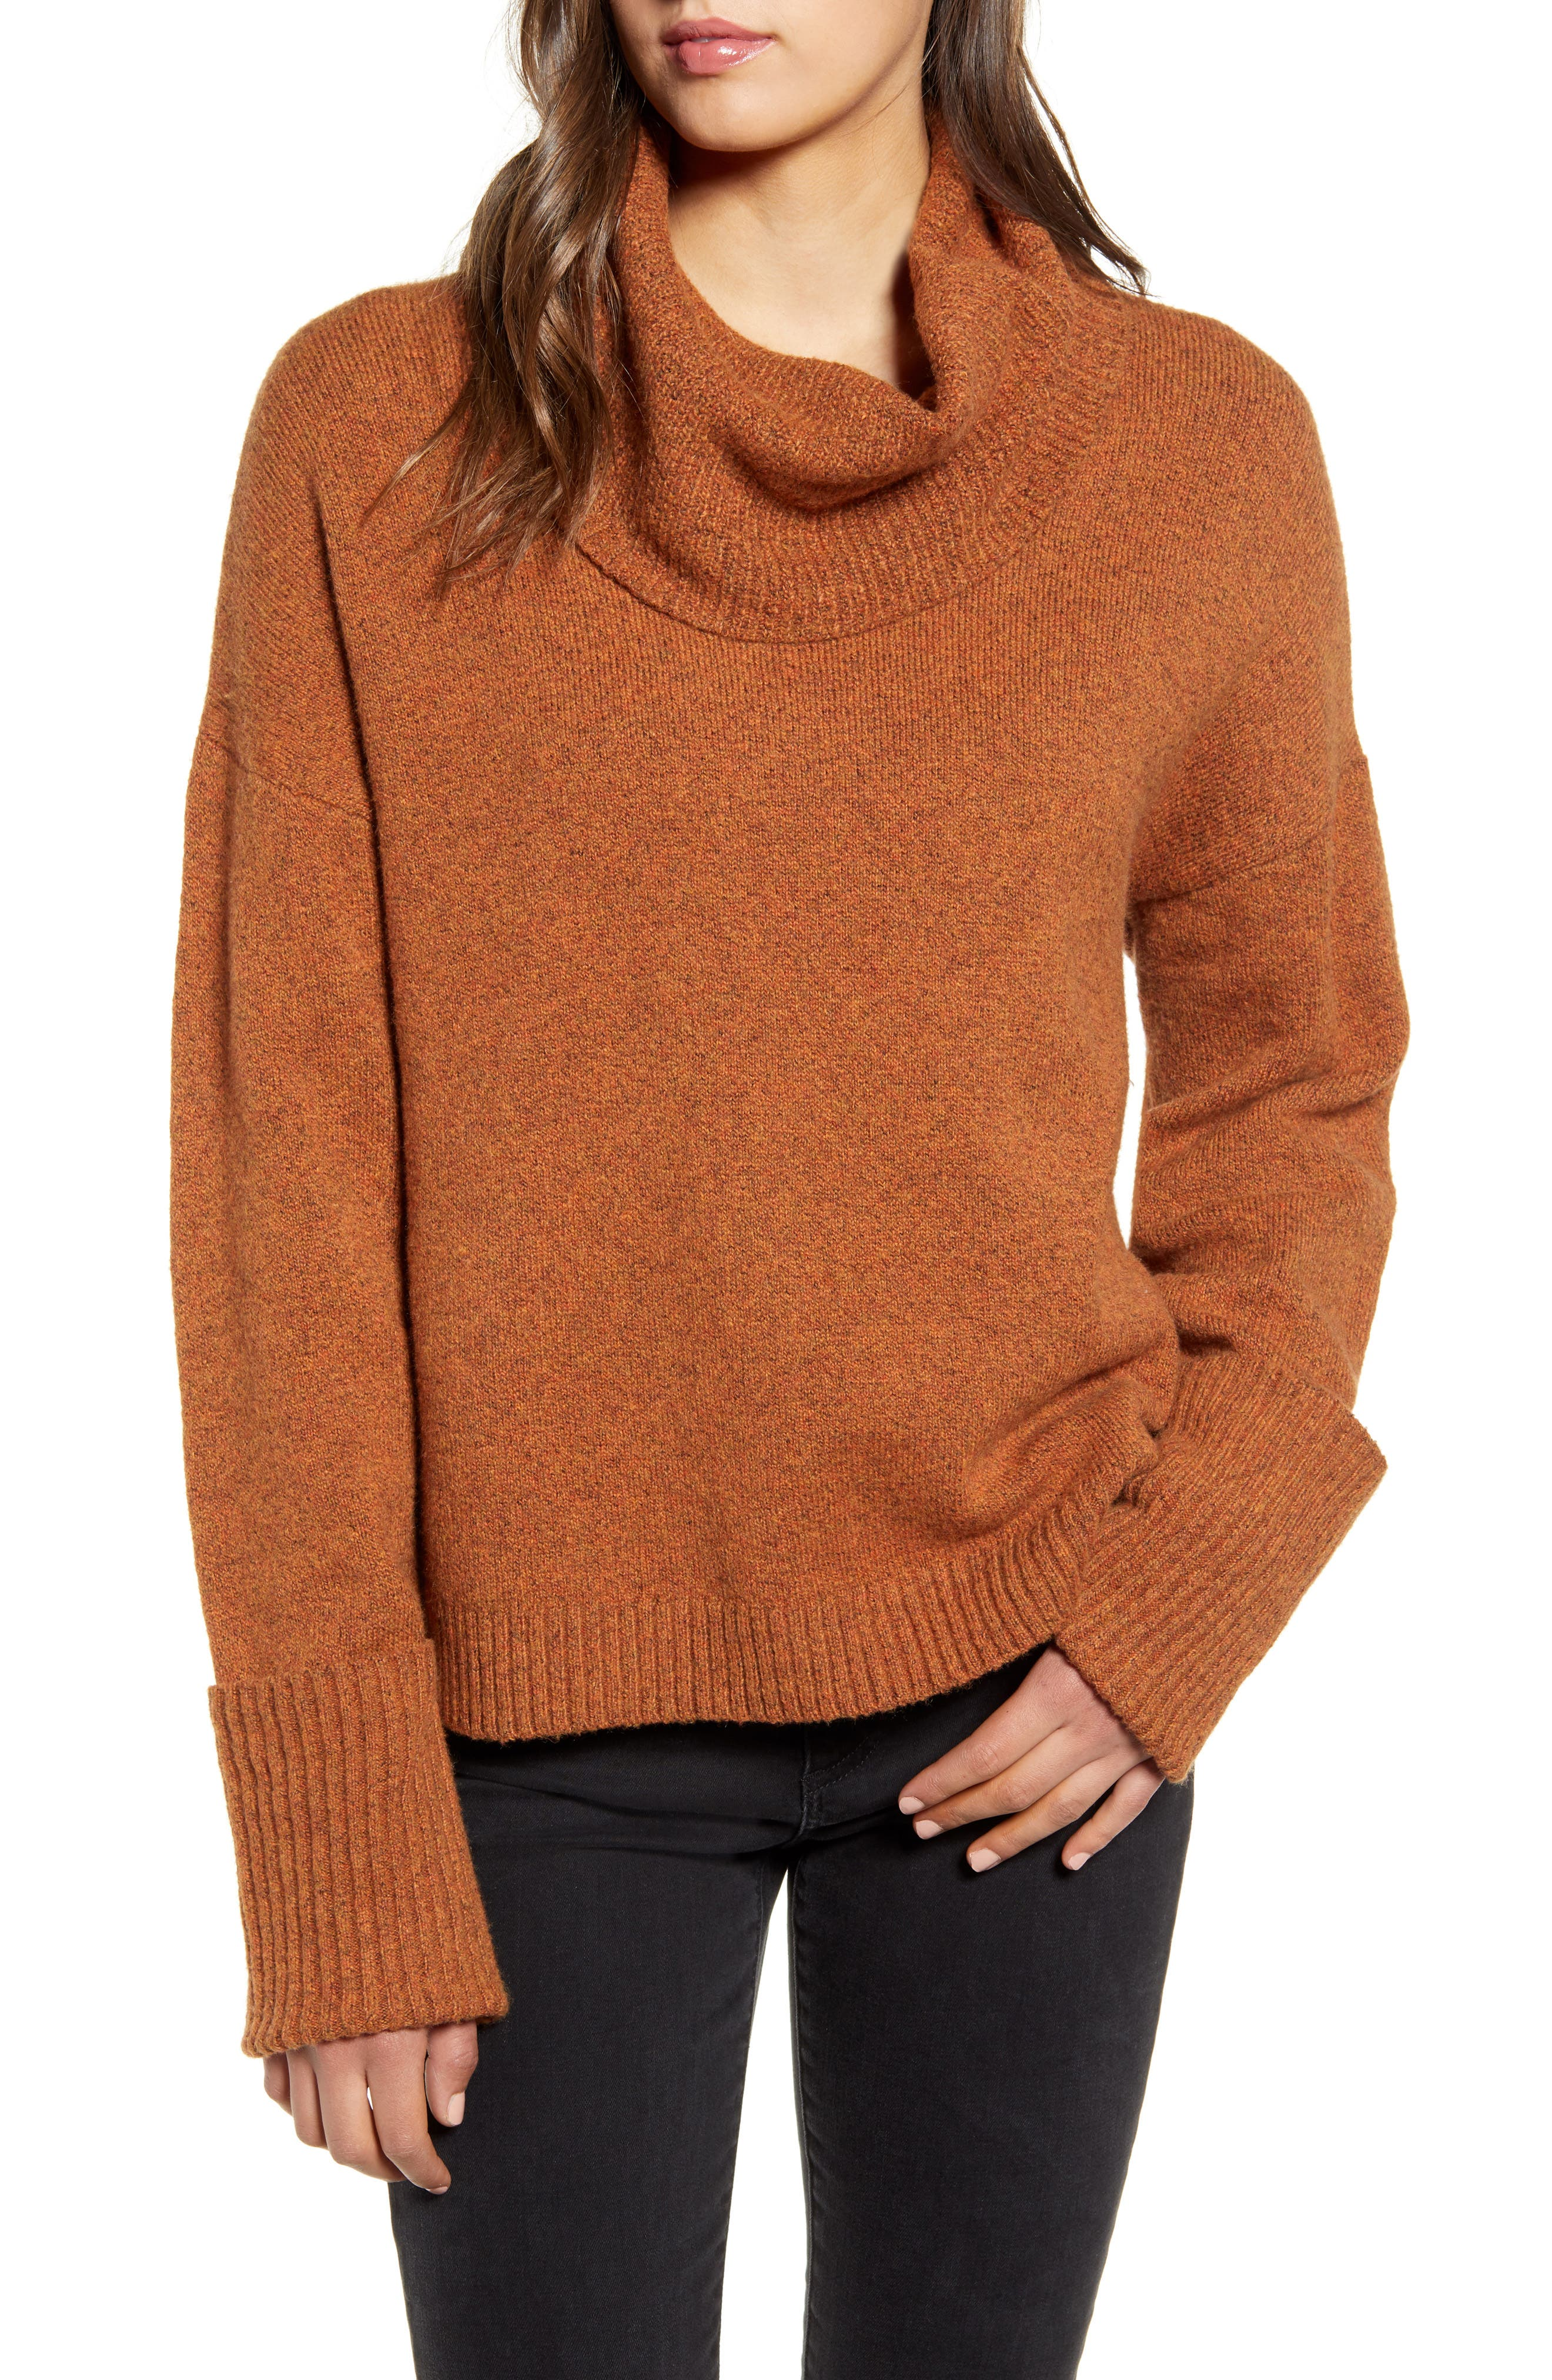 A slouchy cowl neck adds to the coziness of a soft sweater featuring lengthy long sleeves with ribbed cuffs. Style Name: Chelsea28 Cowl Neck Sweater. Style Number: 5797099. Available in stores.